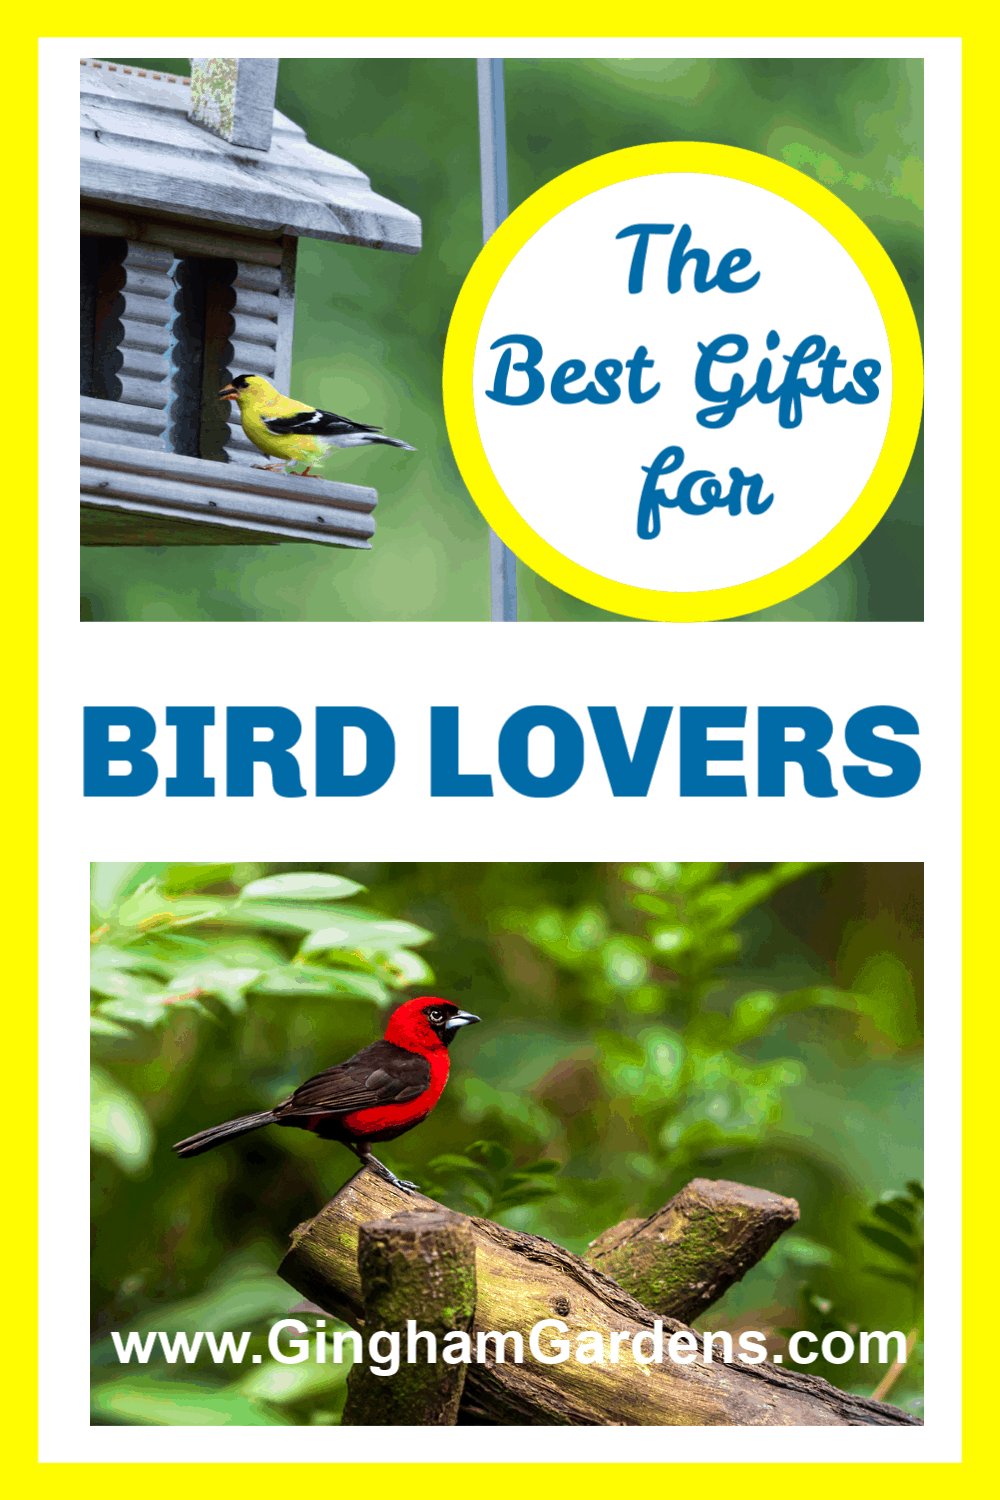 Images of Birds with Text Overlay - The Best Gifts for Bird Lovers